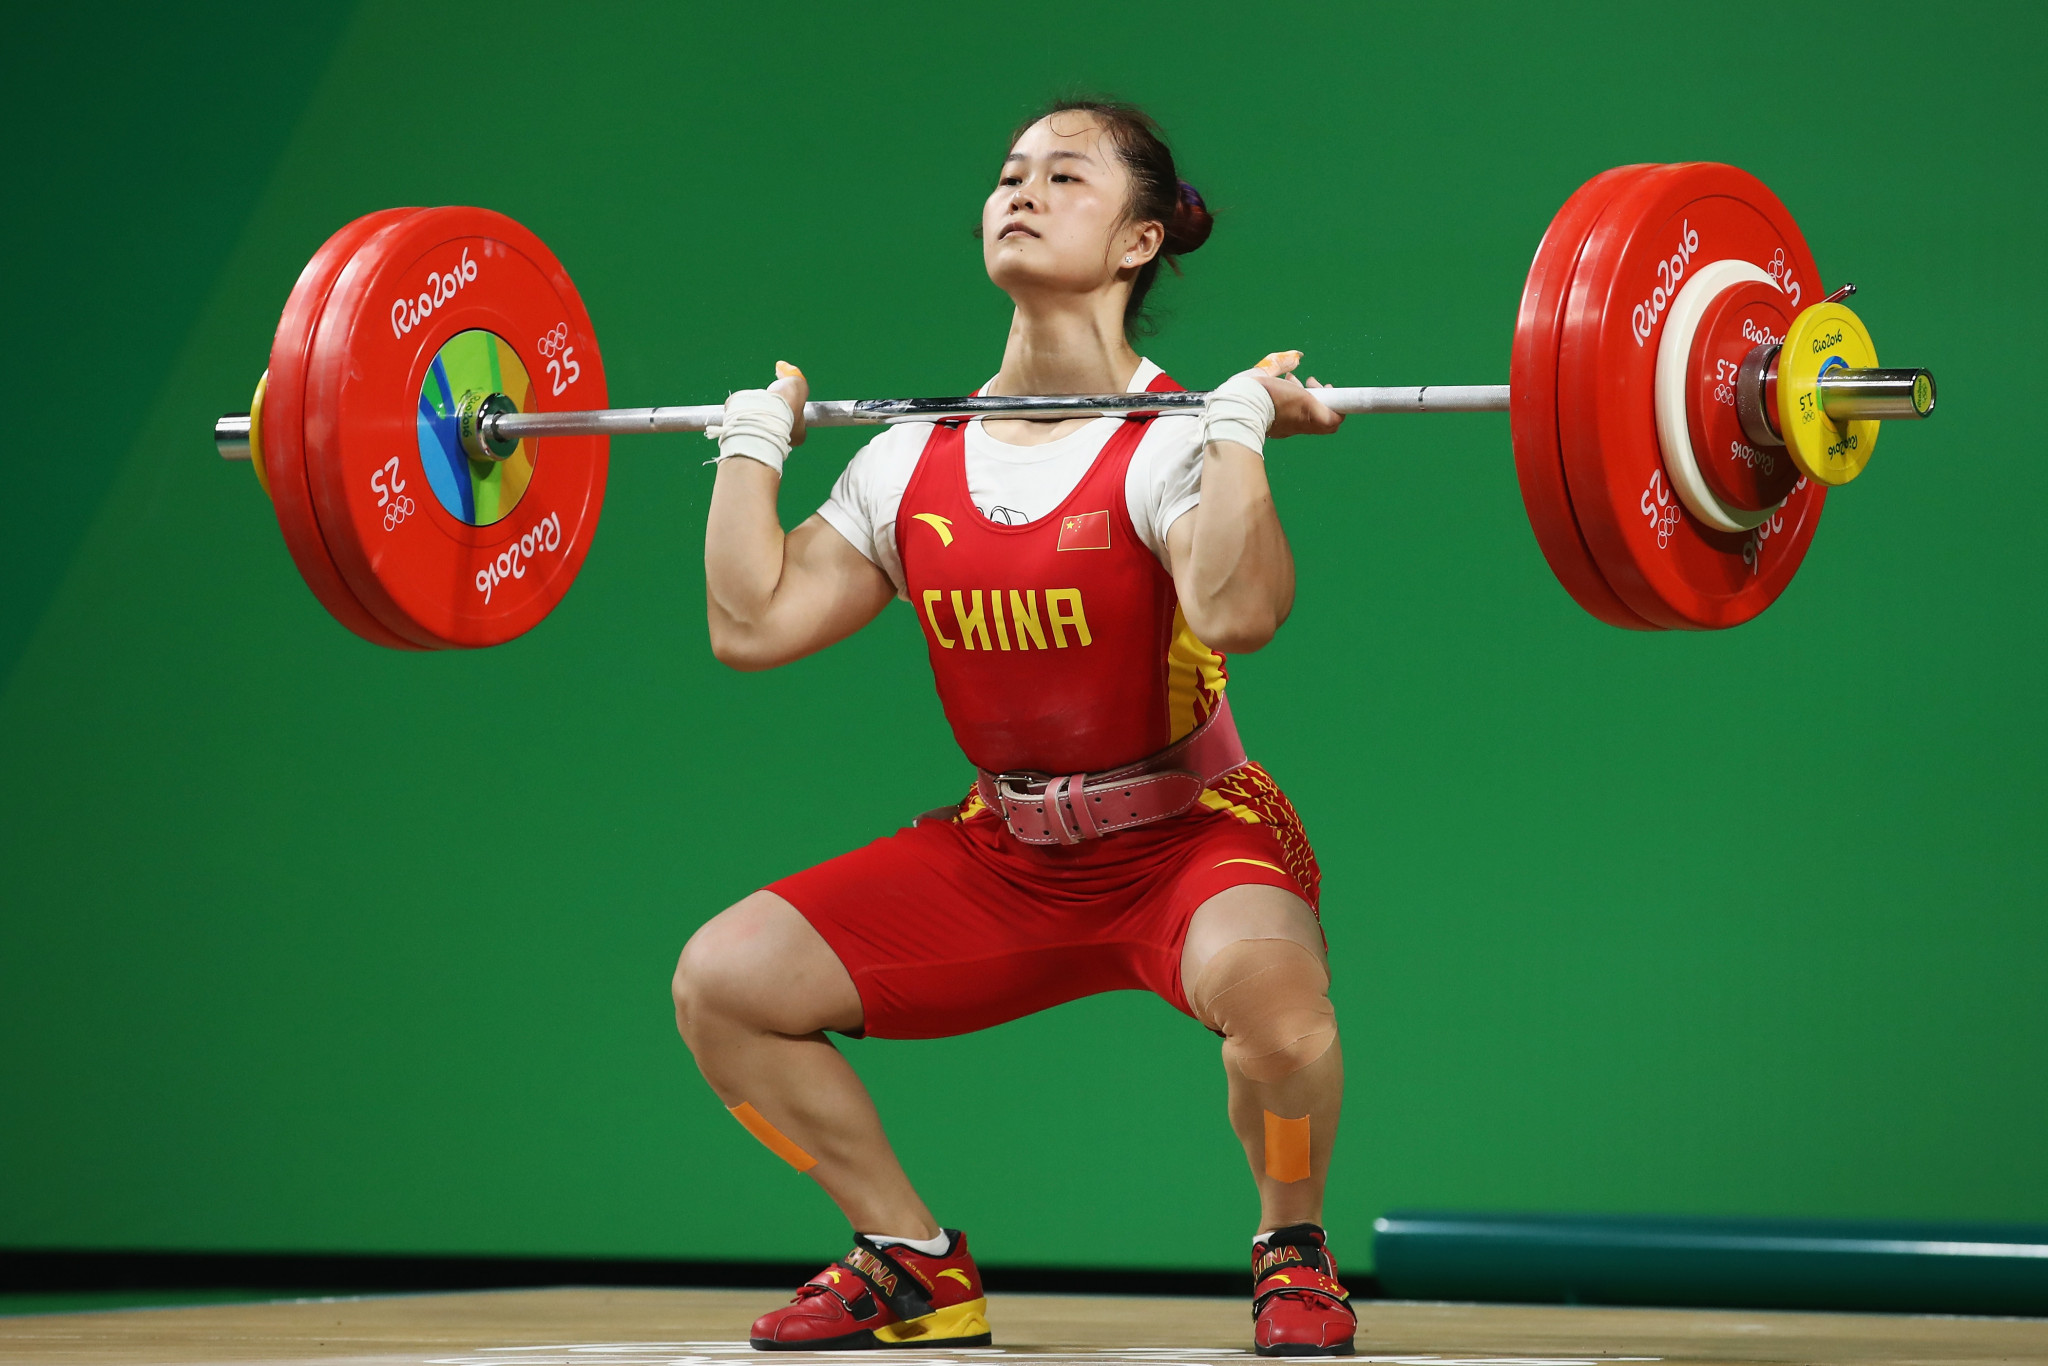 China's Deng Wei broke her world records in the snatch, clean and jerk and total to cruise to victory in the women's 64 kilograms category at the Asian Weightlifting Championships in Ningbo in China today ©Getty Images